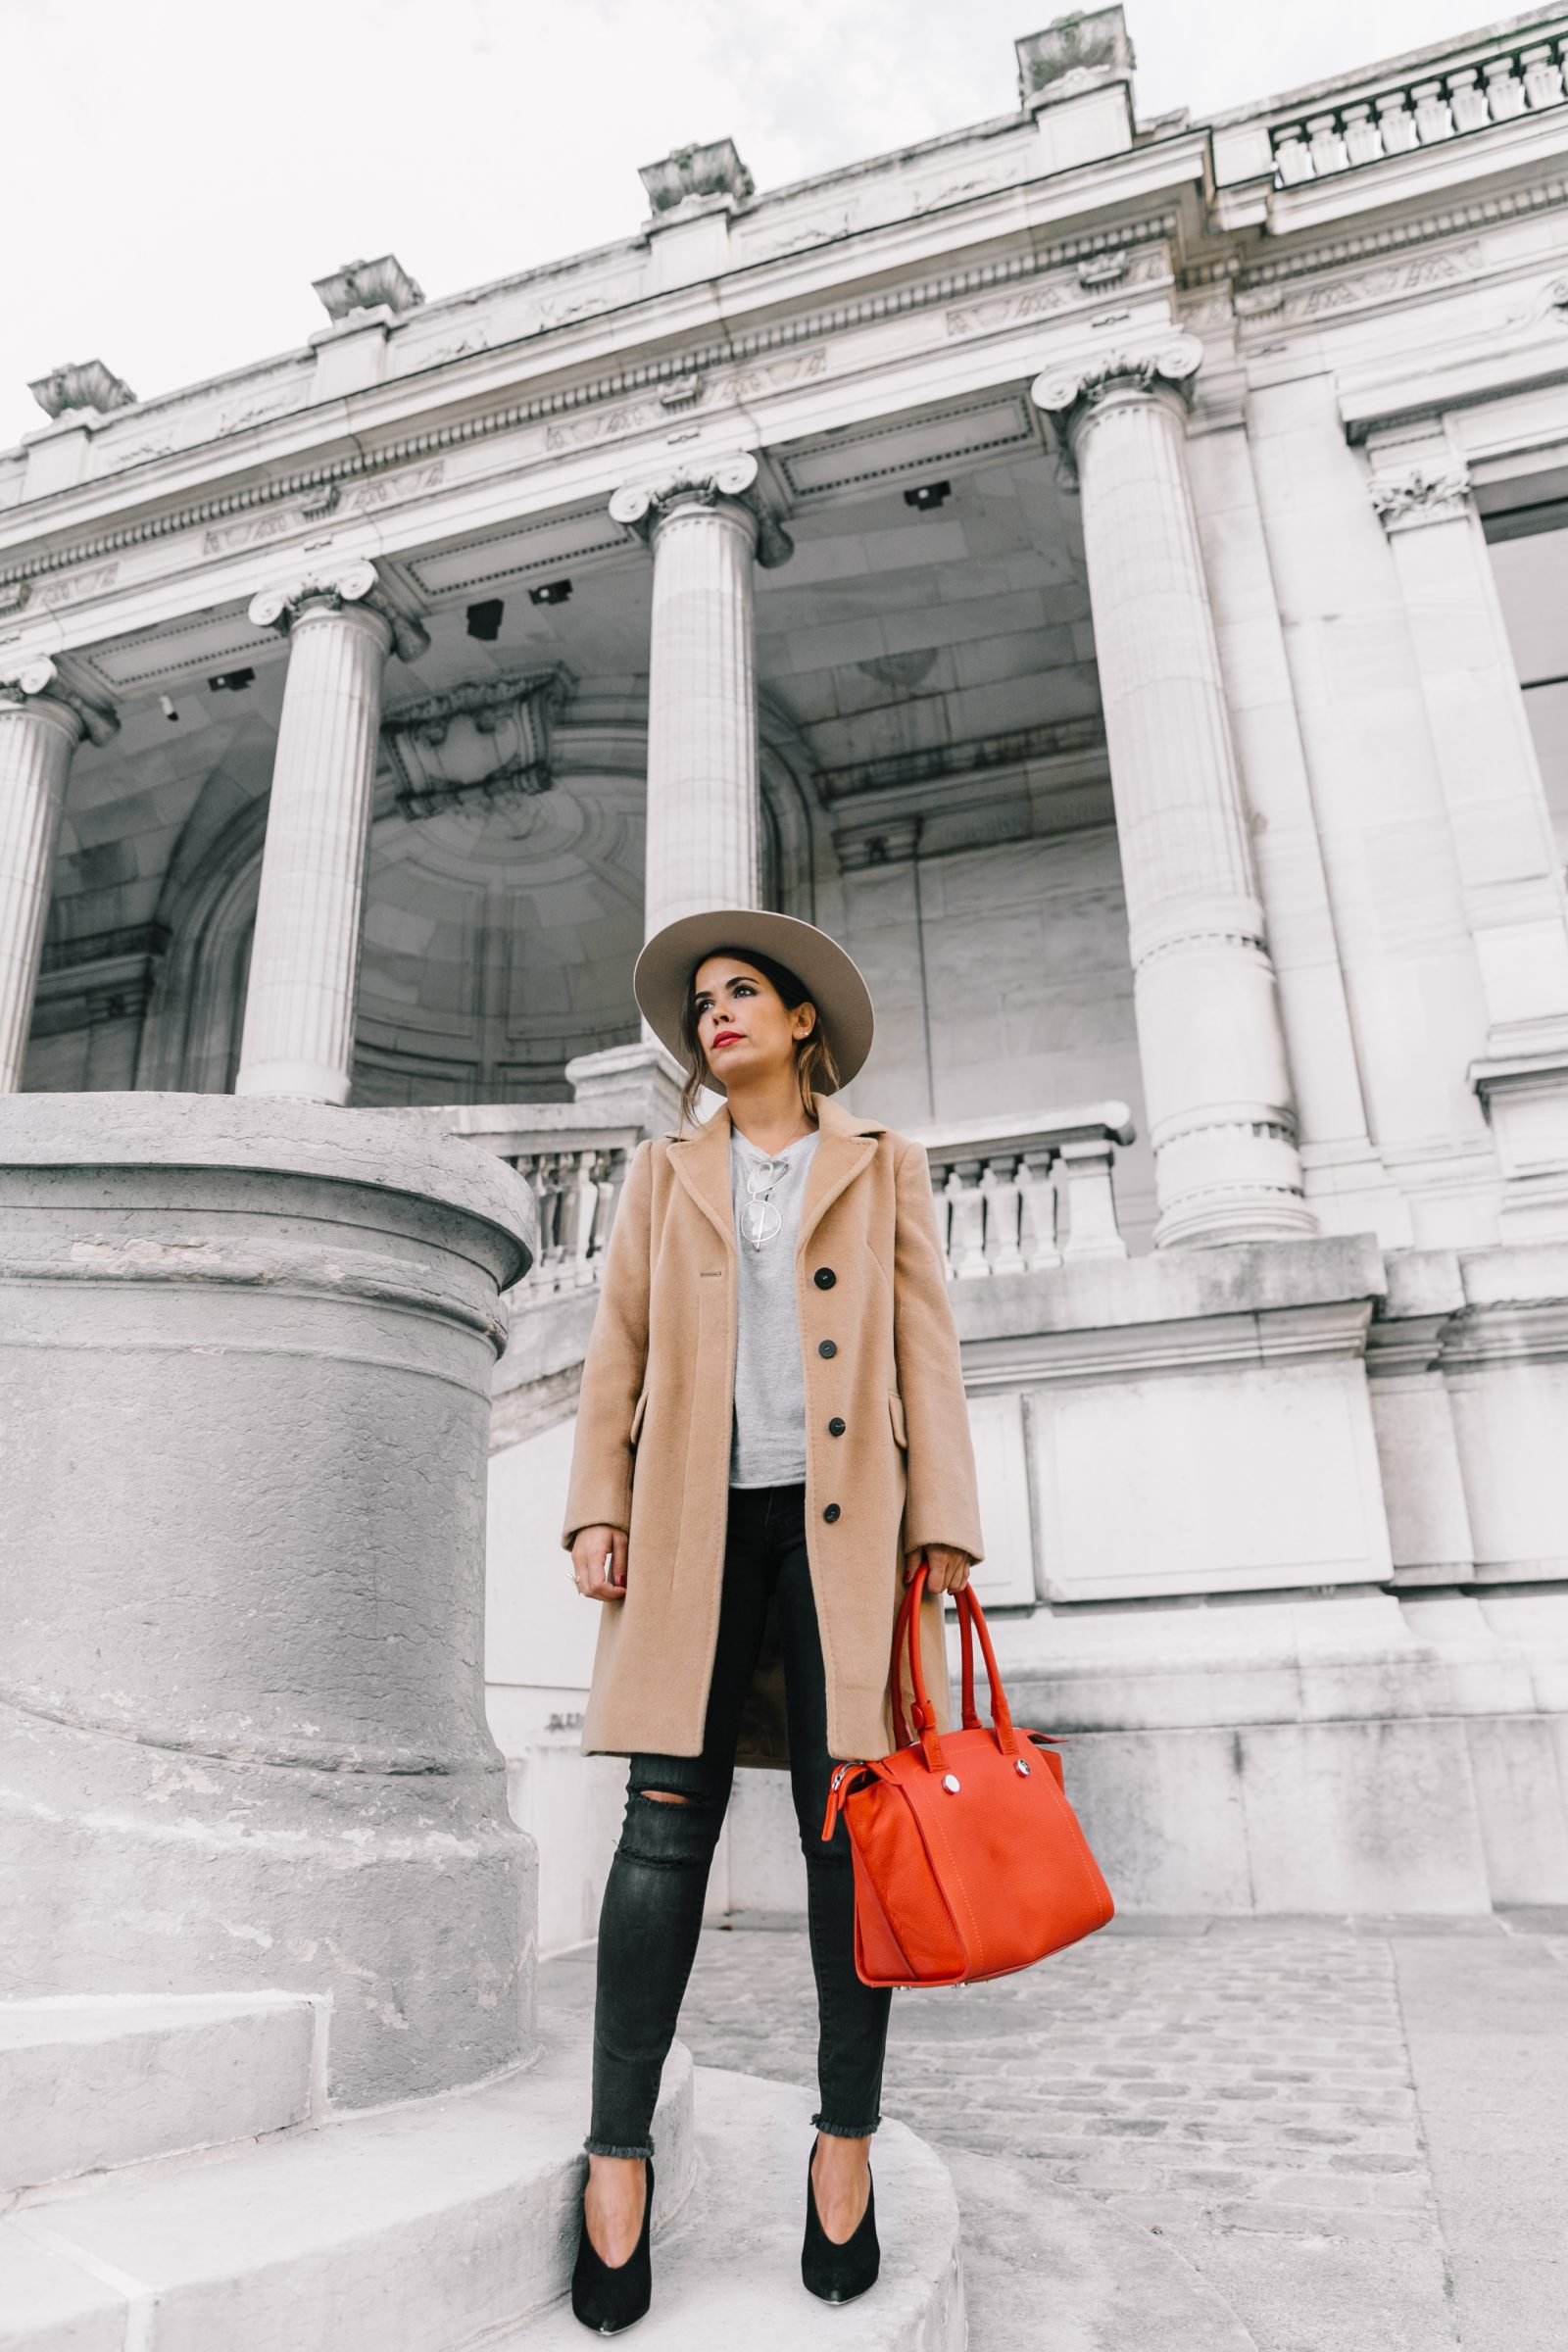 pfw-paris_fashion_week_ss17-street_style-outfits-collage_vintage-max_and_co-camel_coat-orange_bag-skinny_jeans-sandro_shoes-hat-sincerely_jules_jeans-30